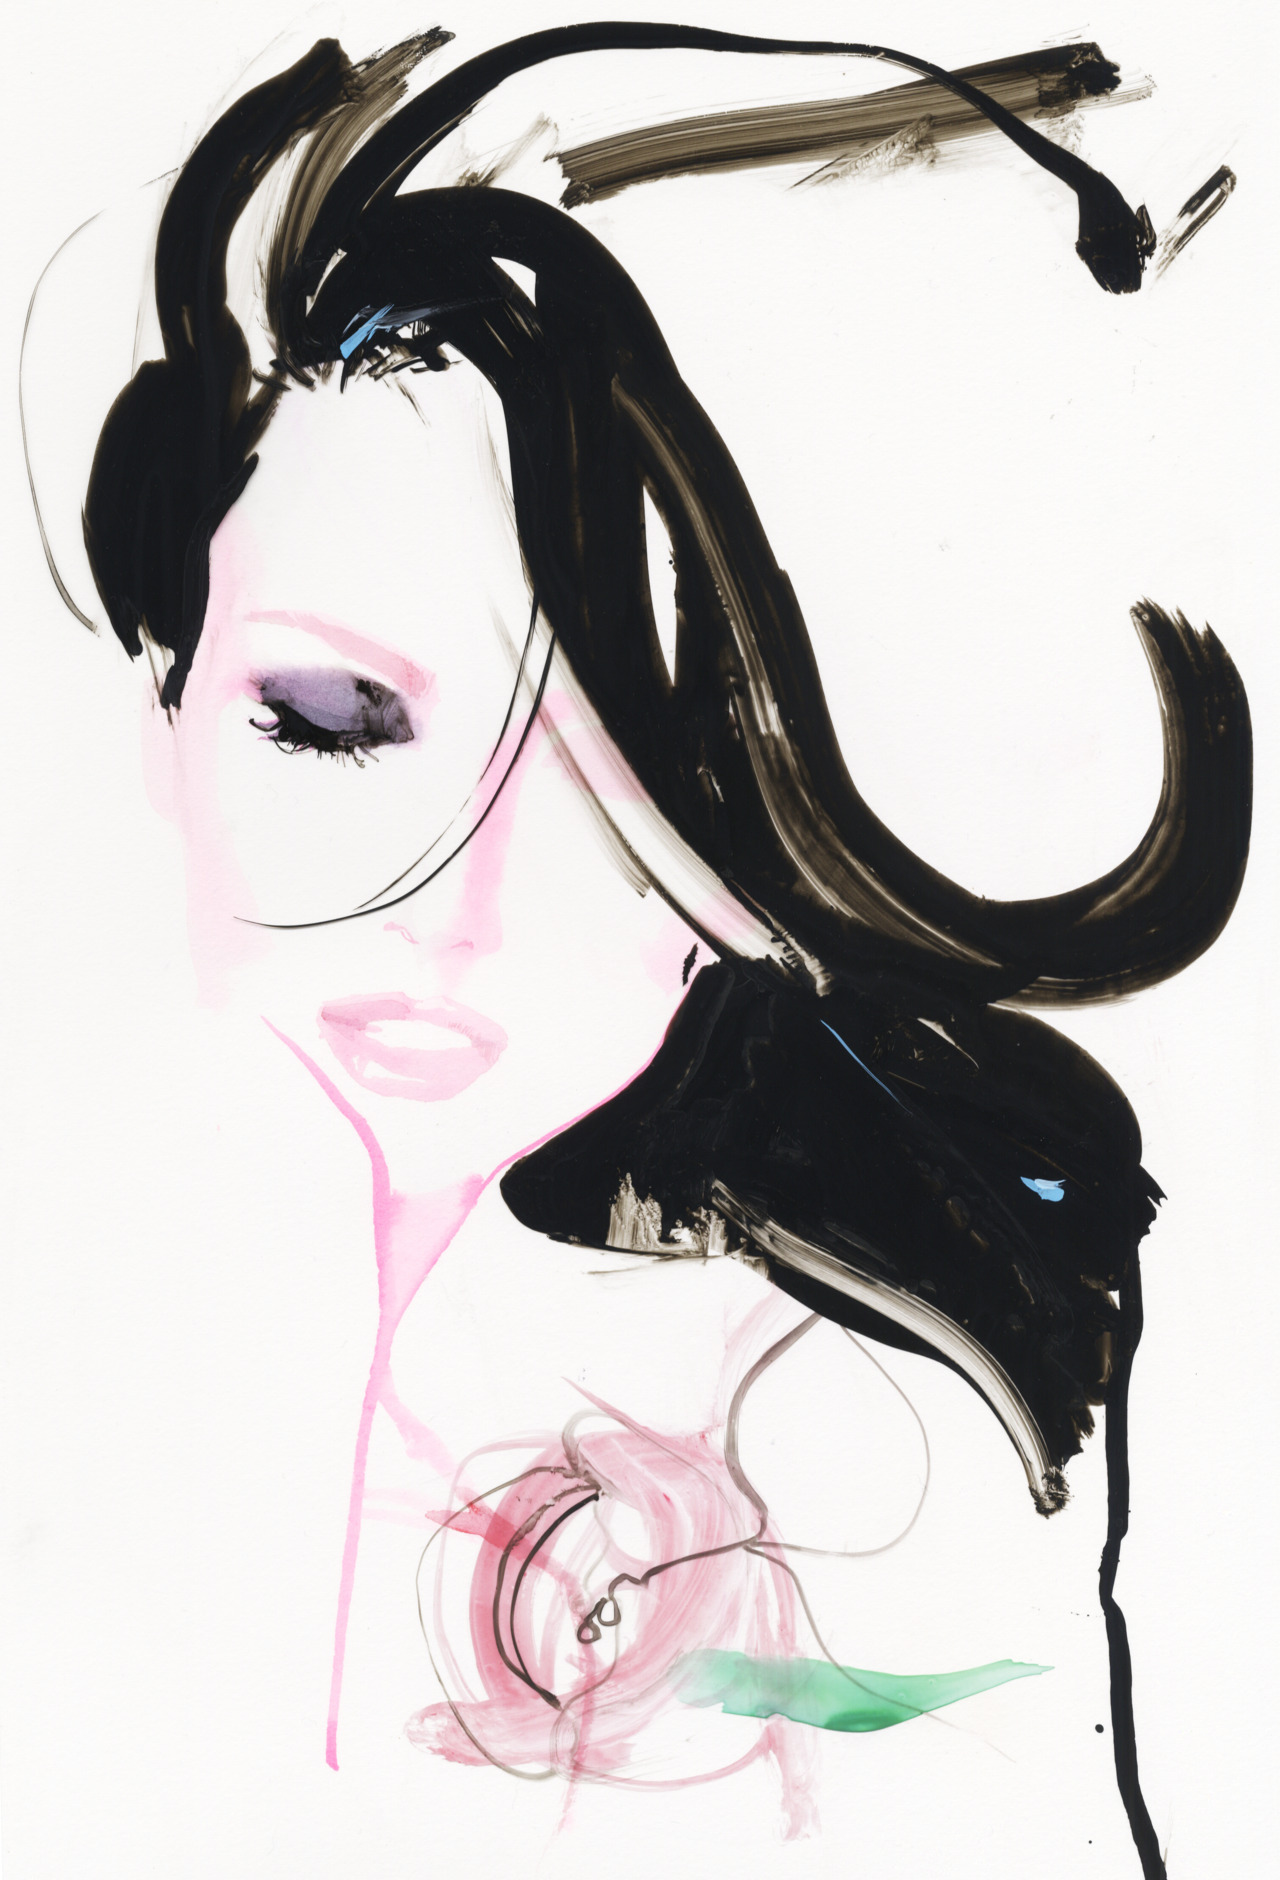 david downton's amazing illustration for harper's bazaar australia in honor of our fragrance live in love.